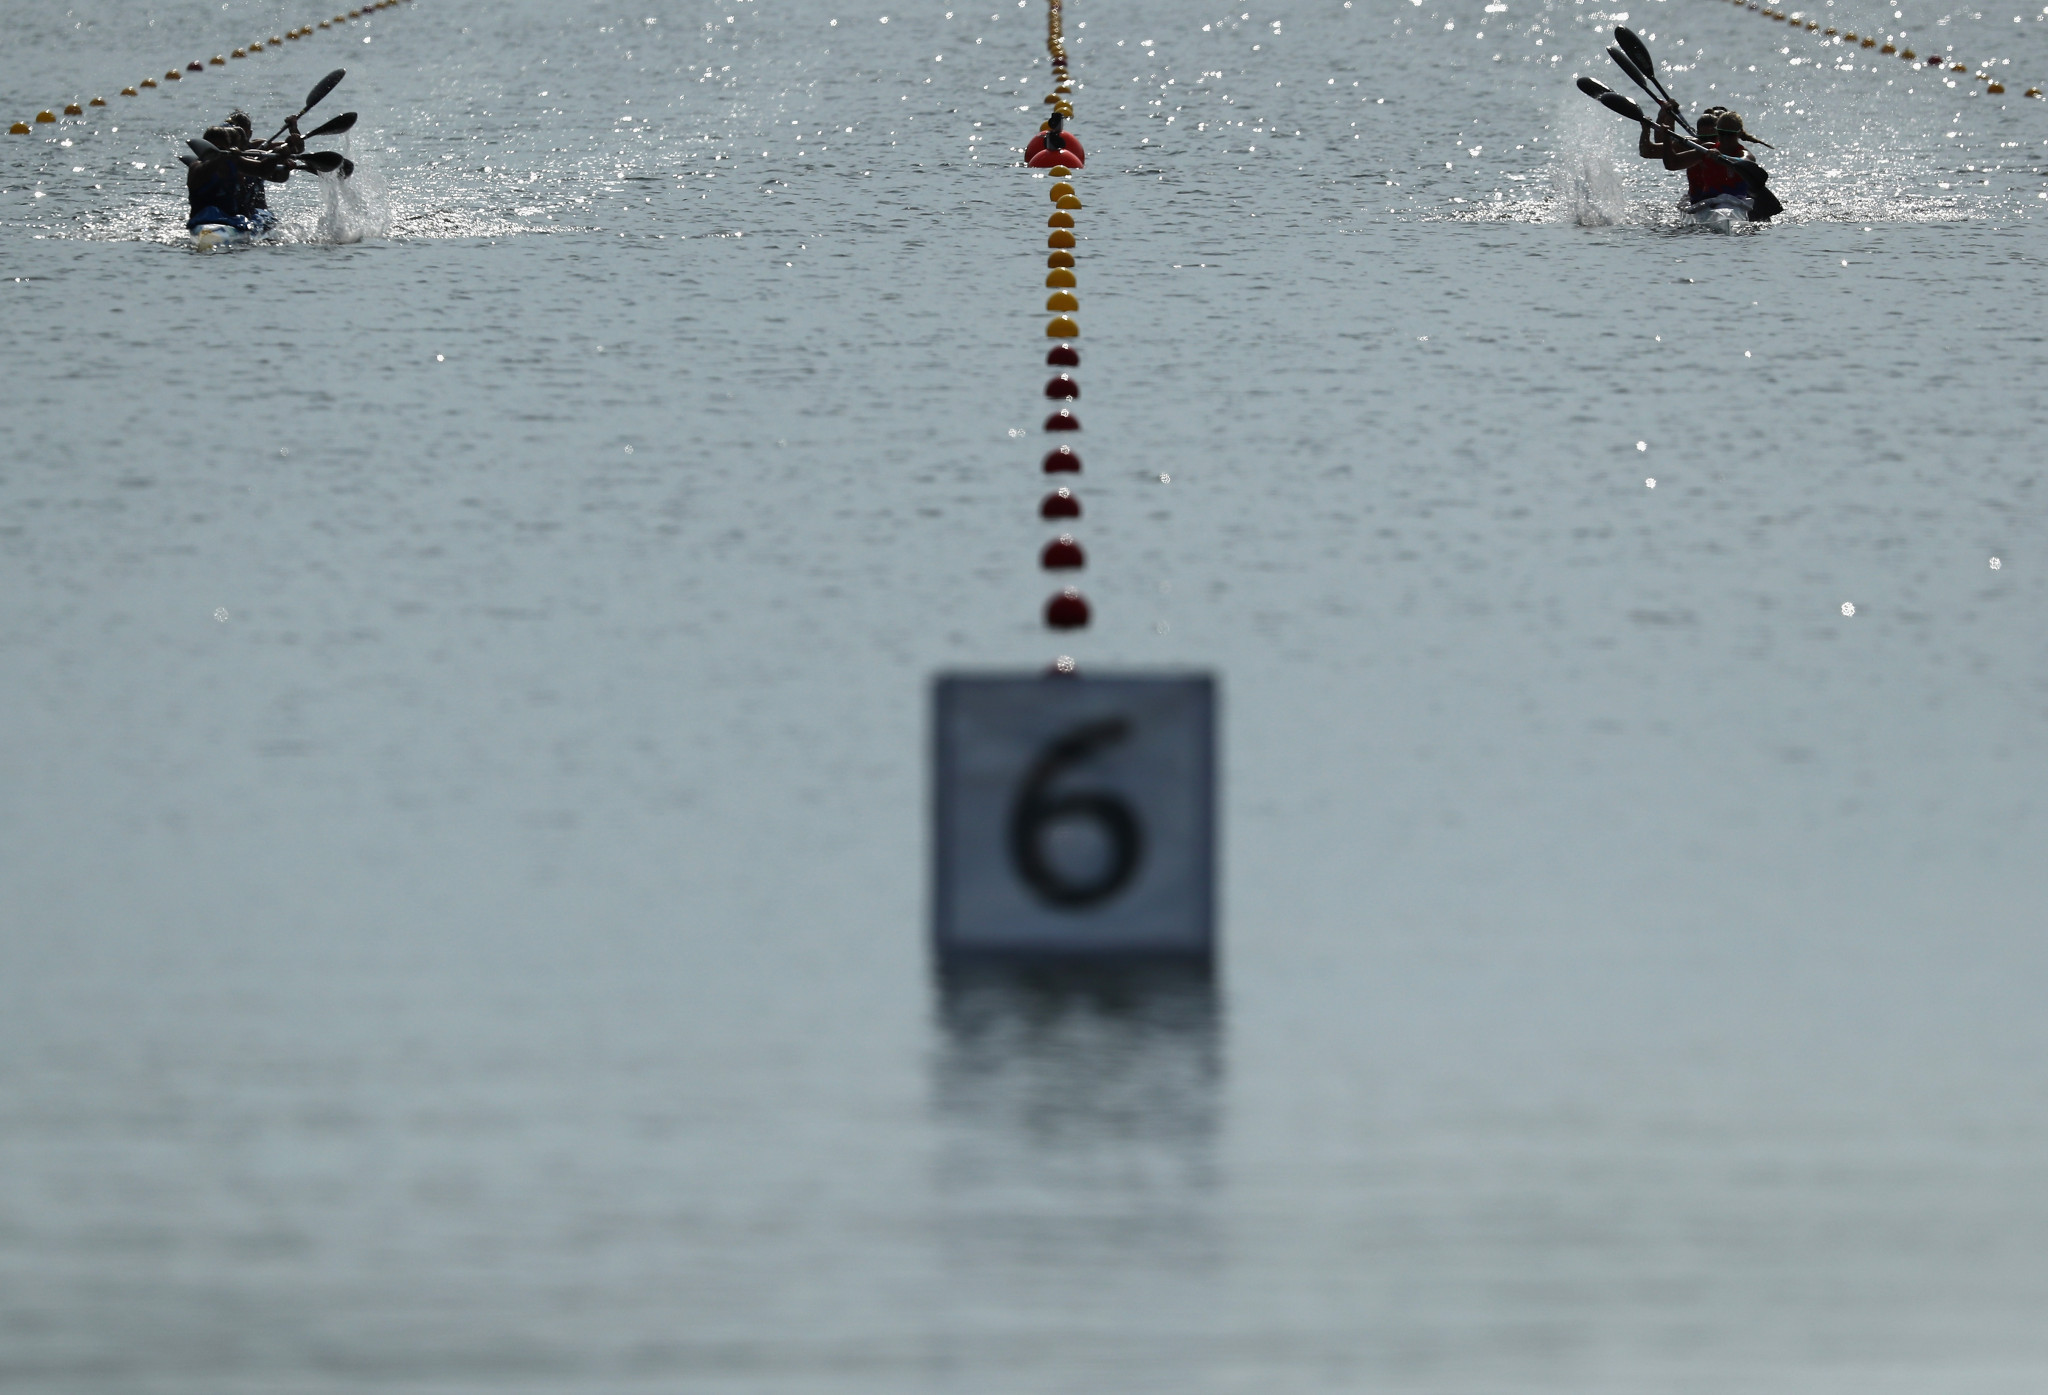 The European Olympic canoe sprint qualifier is underway ©Getty Images